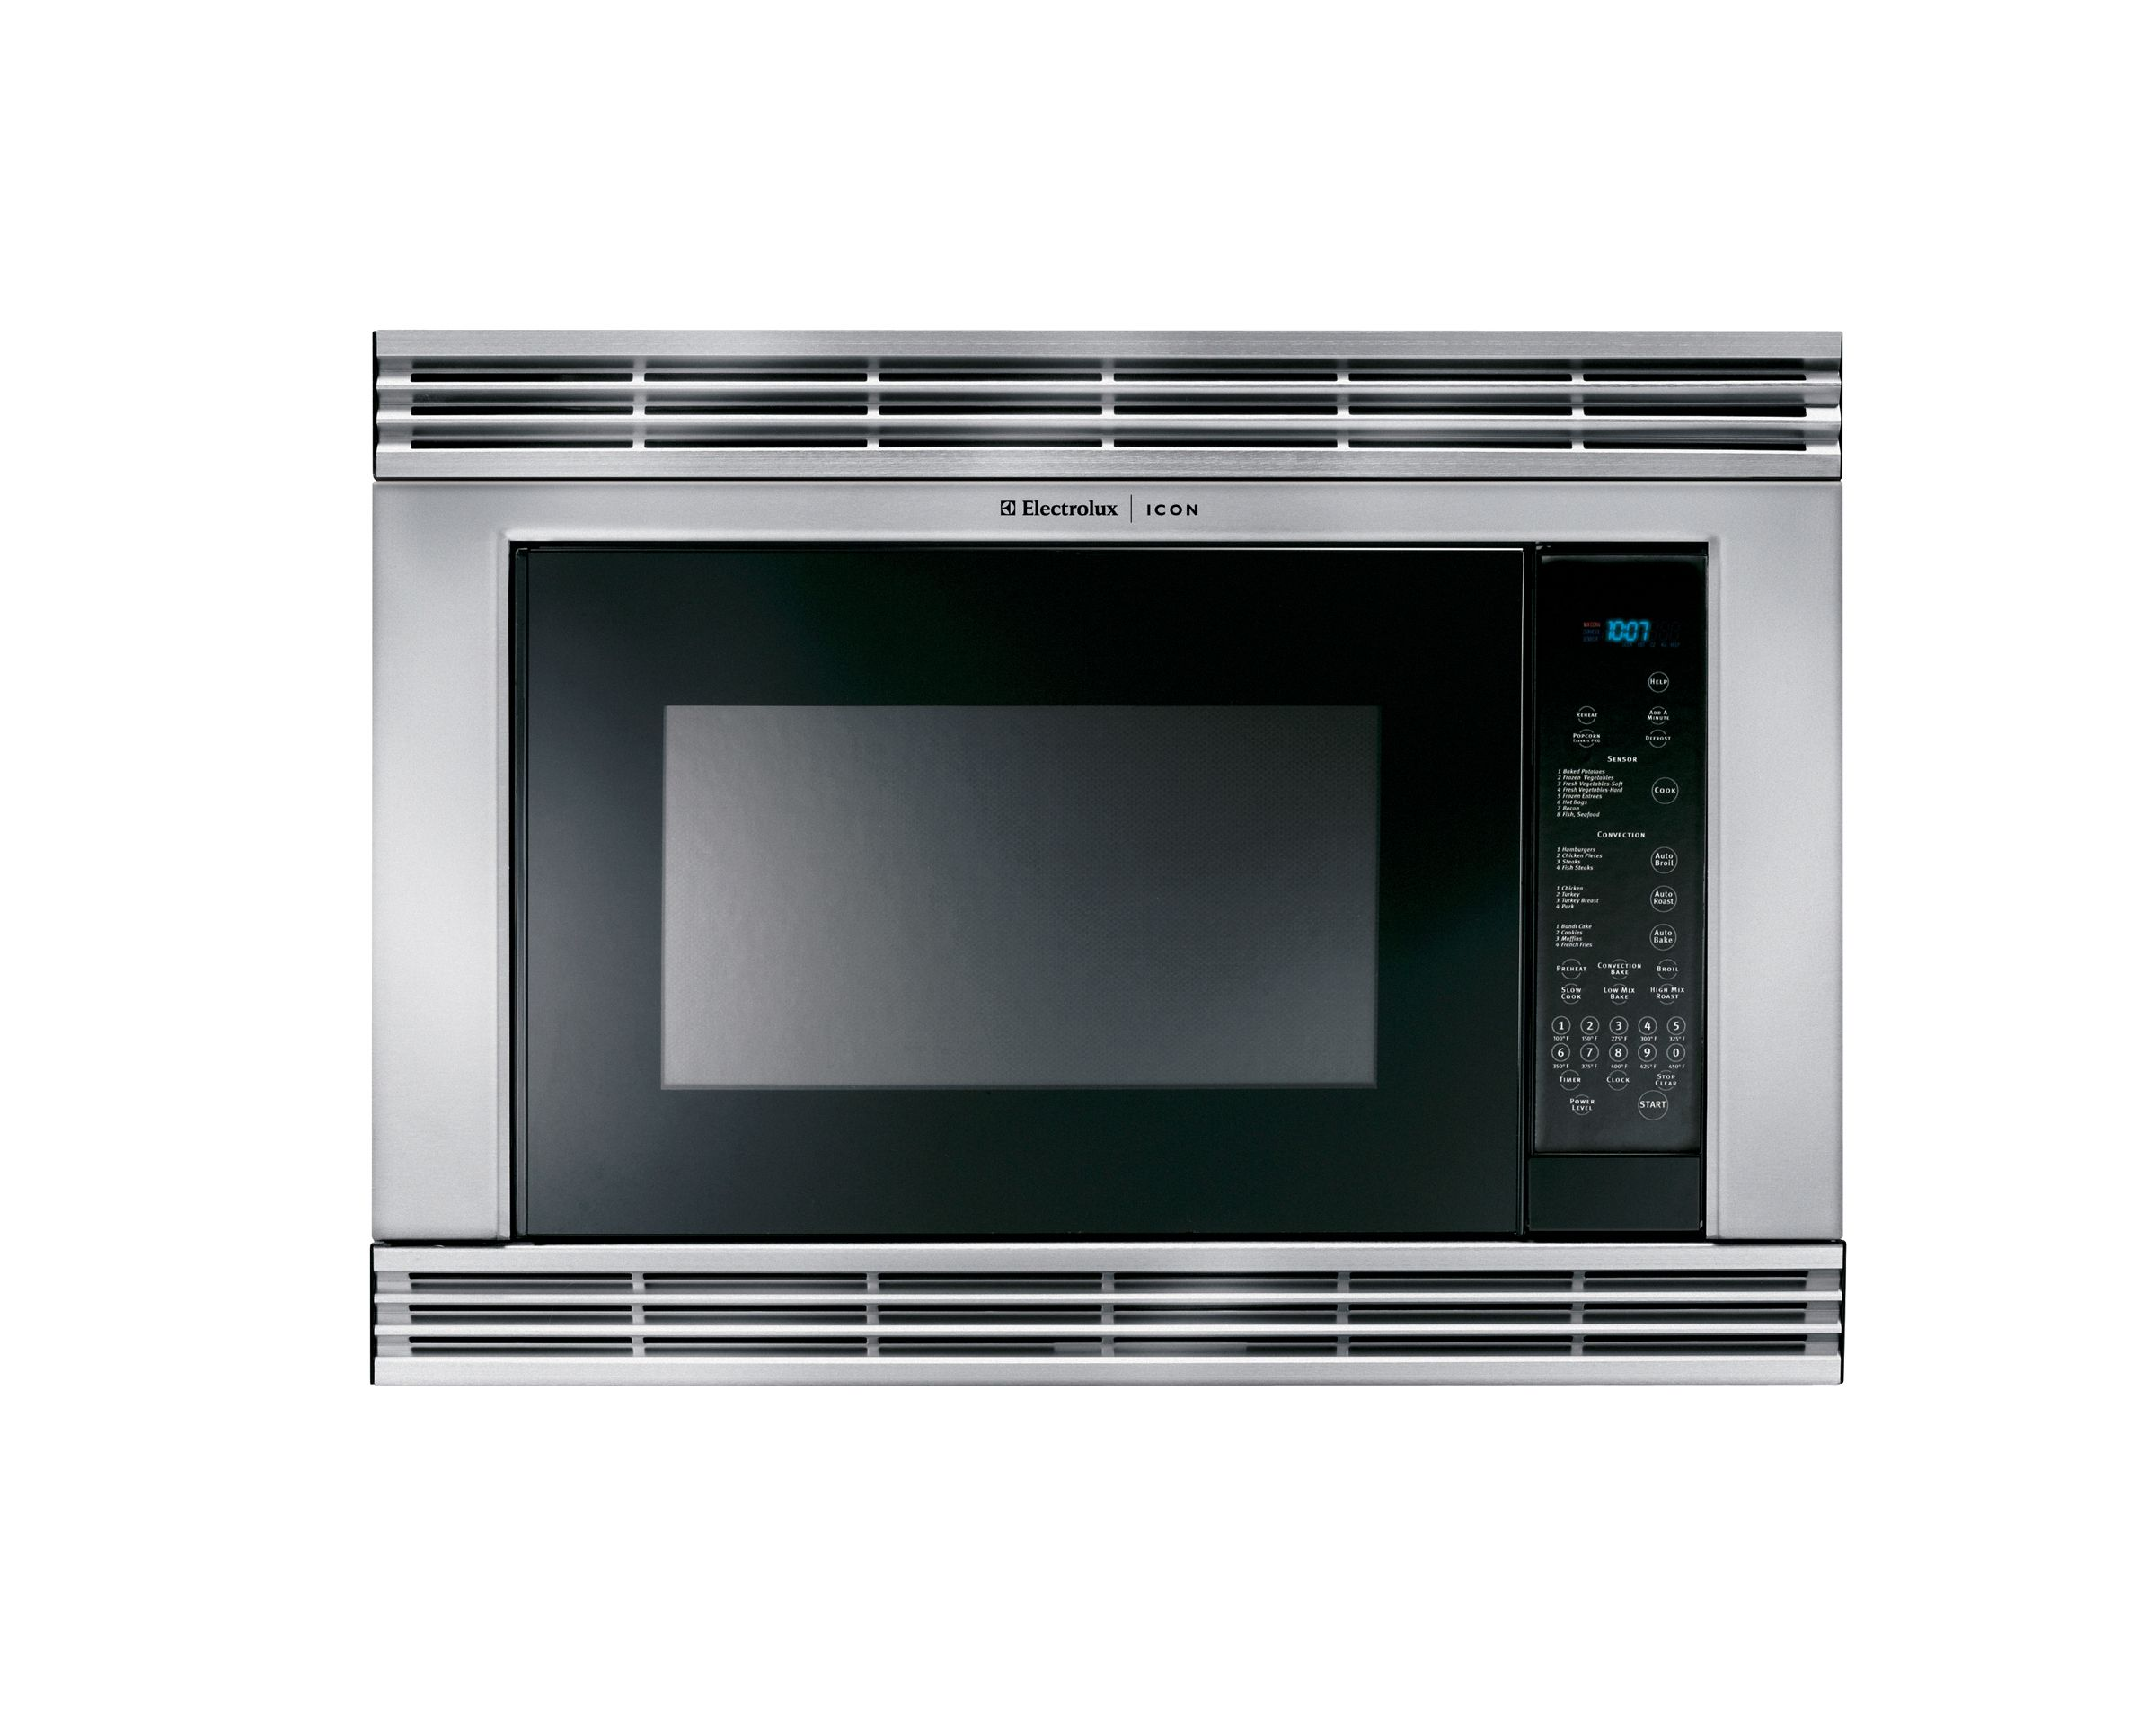 Electrolux ICON E30MO65GSS 1.5 cu. ft. Built-In Convection Microwave Oven - Stainless E30MO65GSS